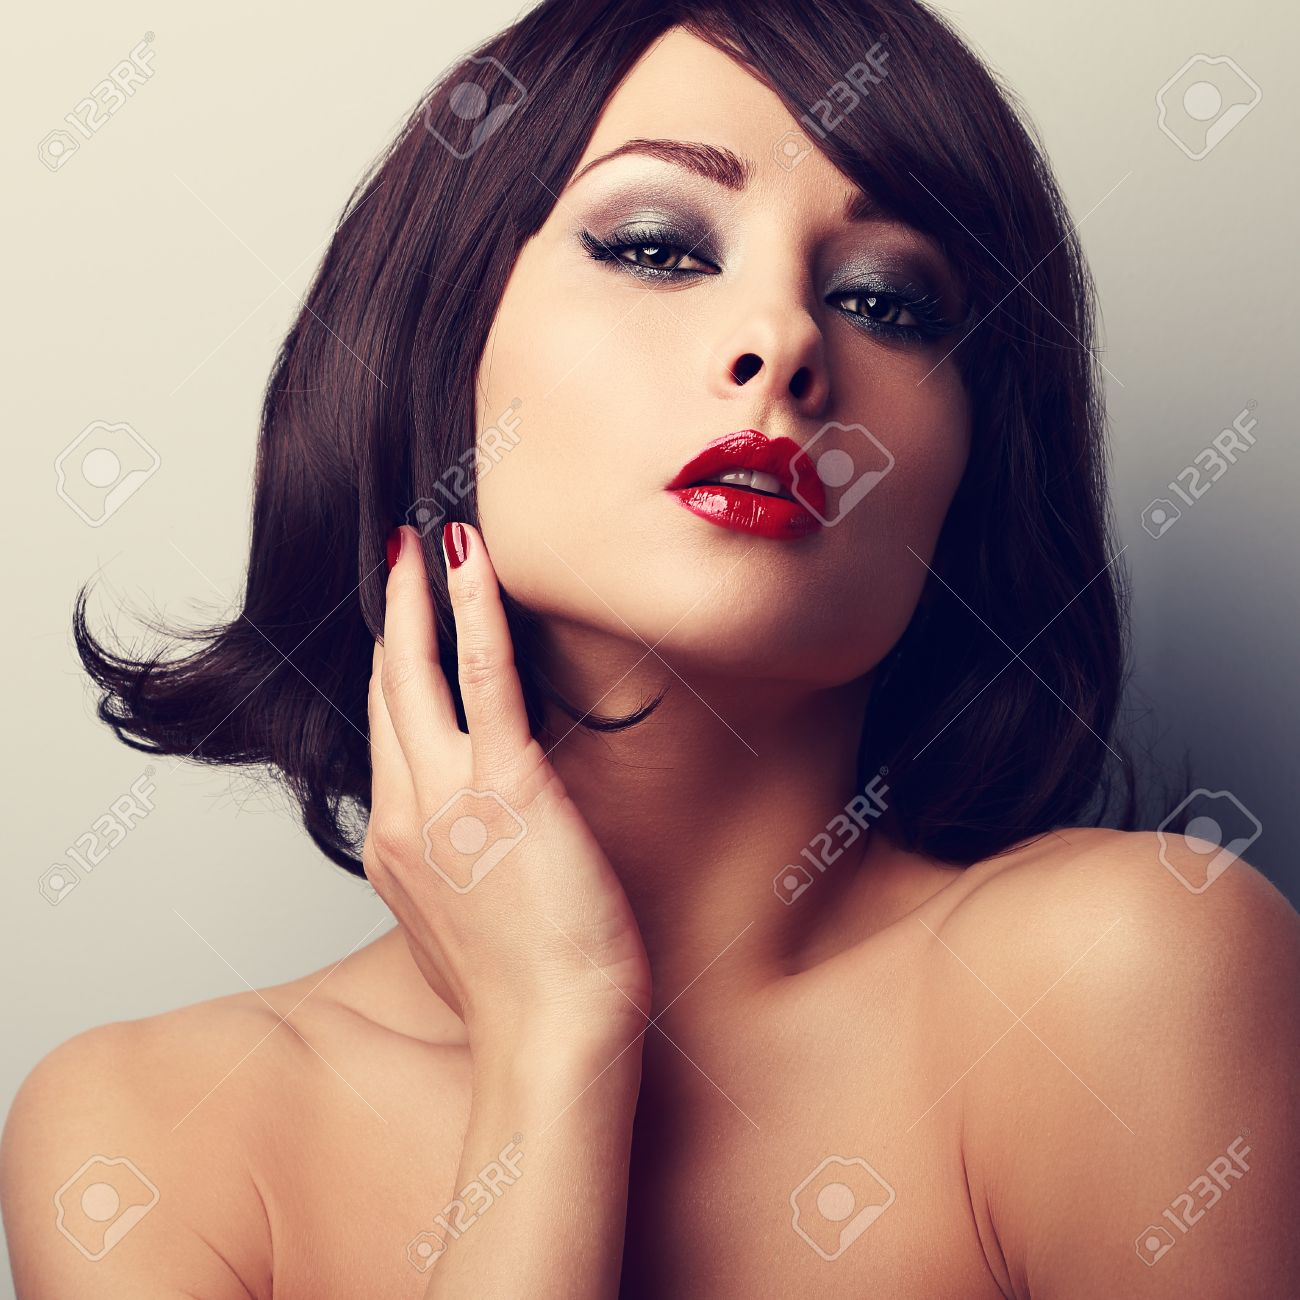 Hot Sexy Makeup Model With Short Black Hair Style And Red Lipstick